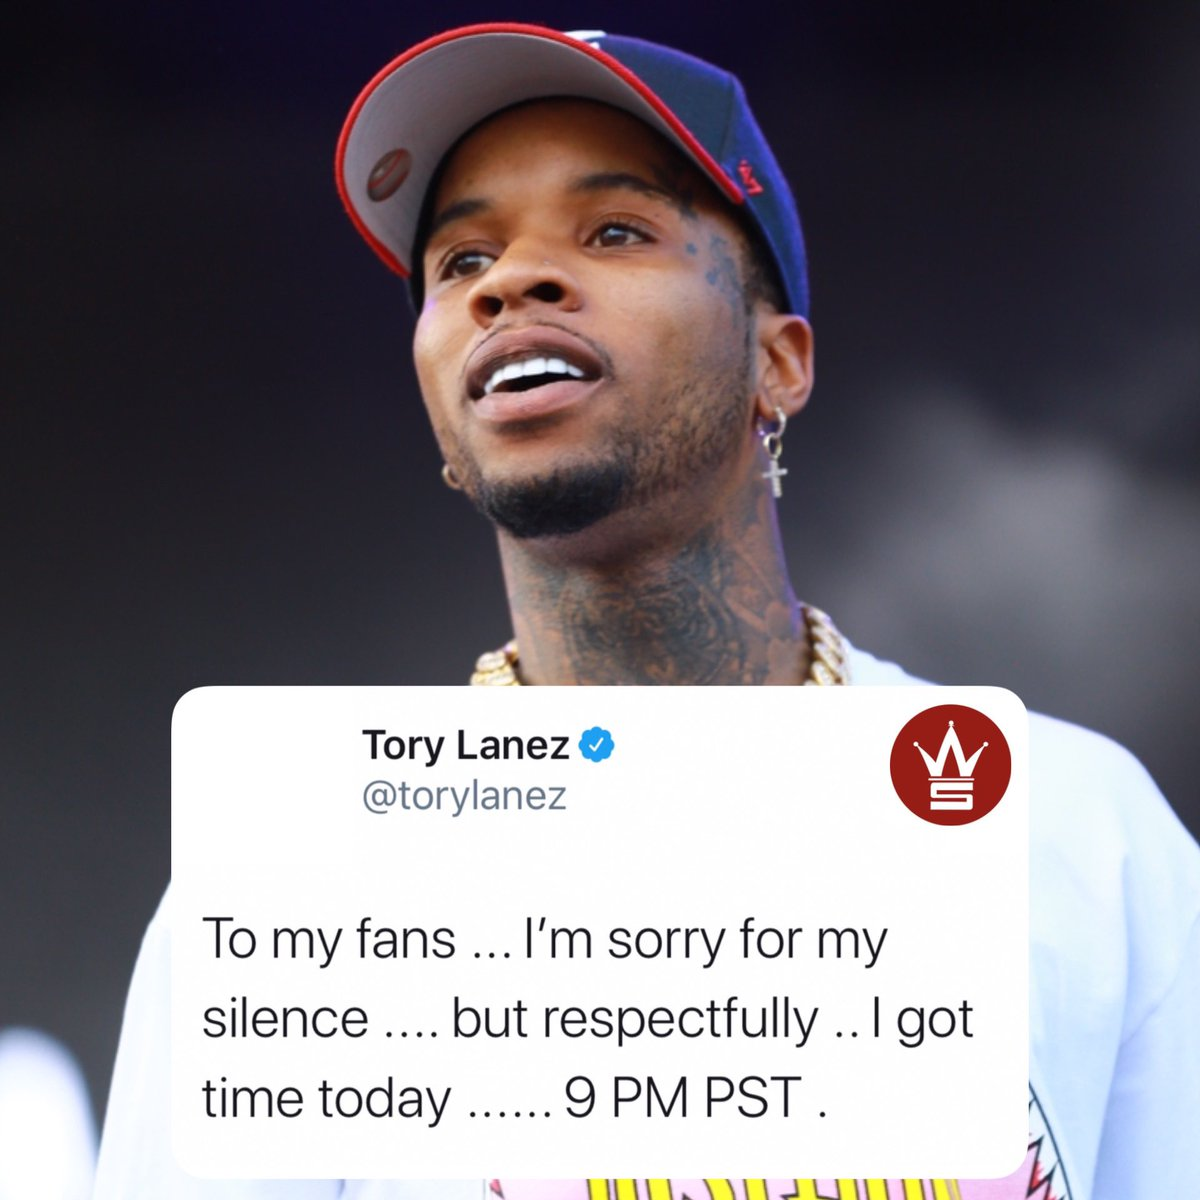 Looks like #ToryLanez will be addressing his fans later this evening...👀 @torylanez https://t.co/gXoKYlMsSp